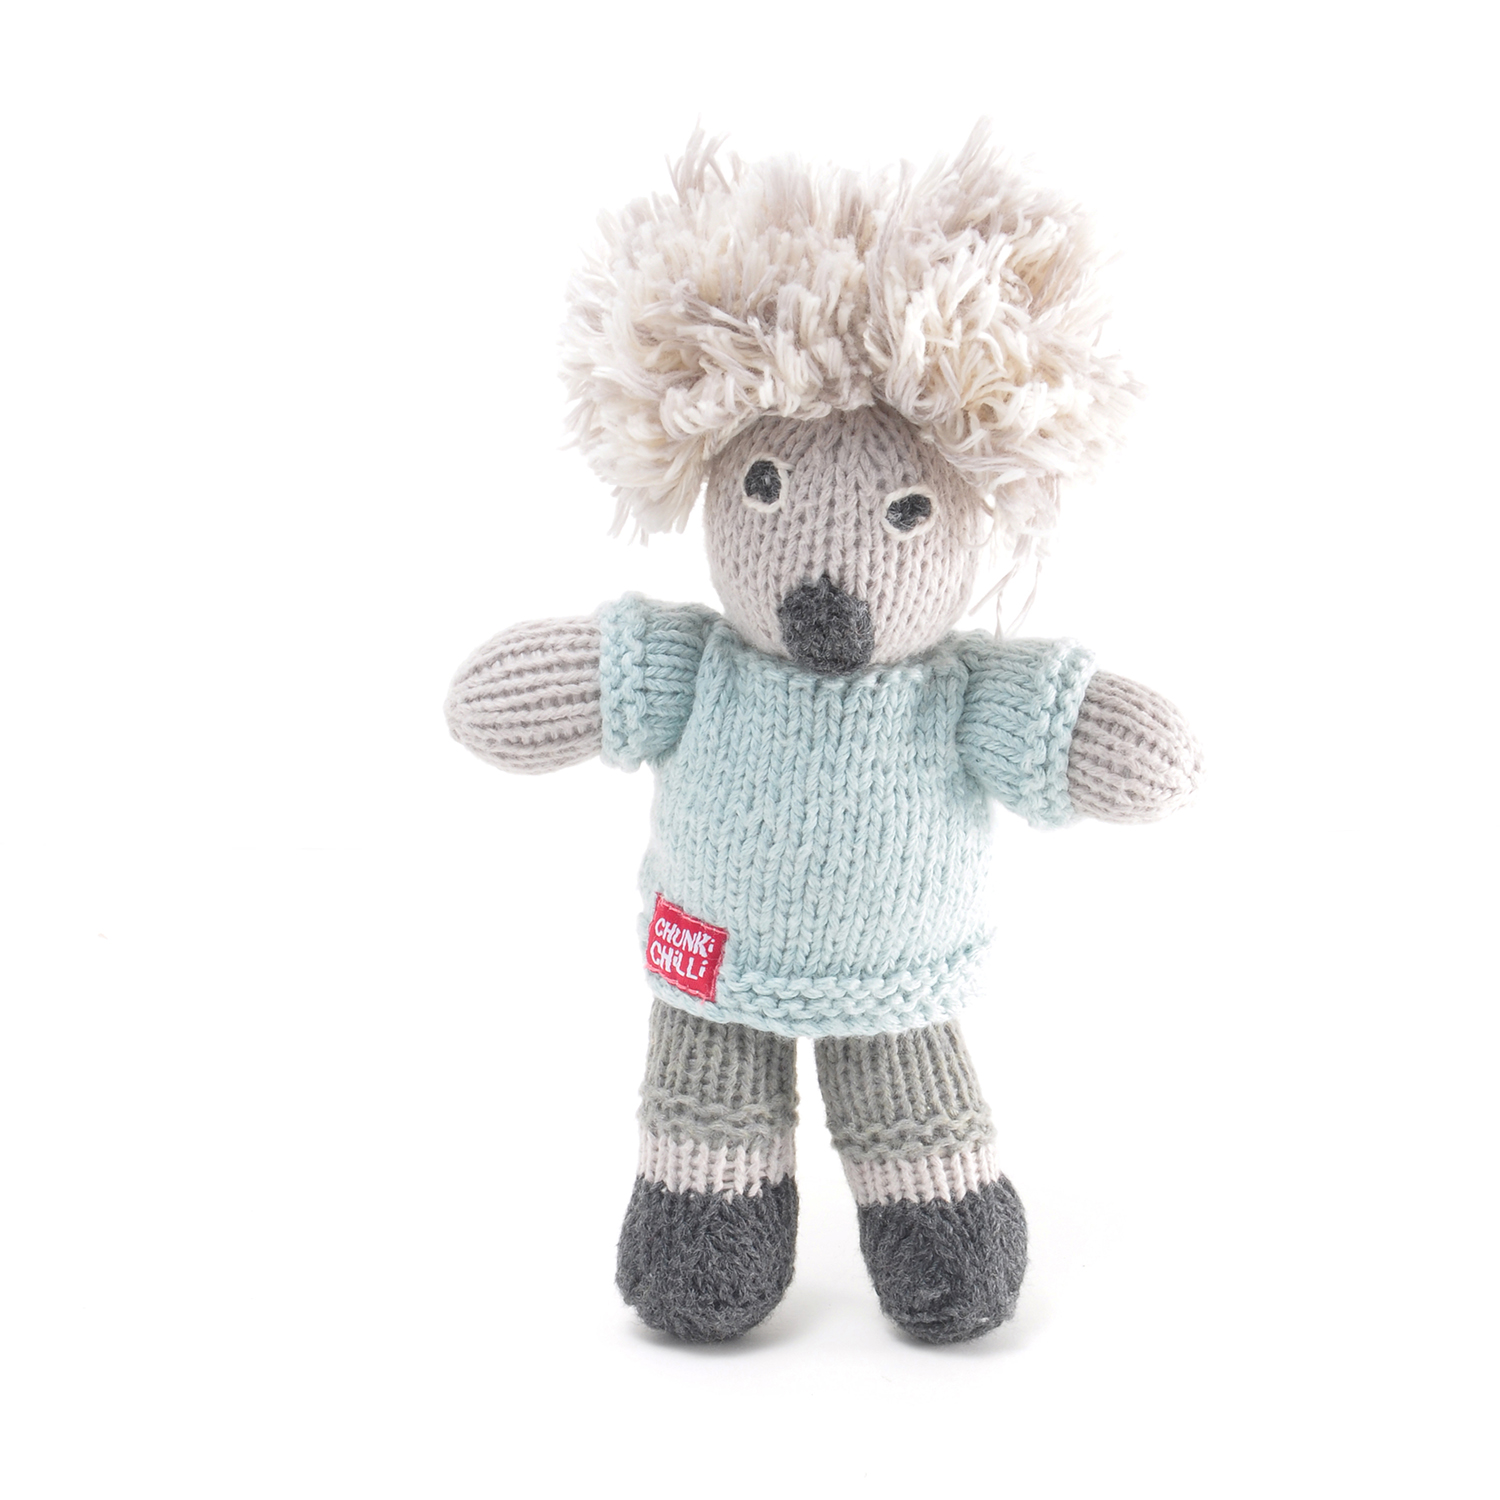 ChunkiChilli Organic Cotton Koala Soft Toy